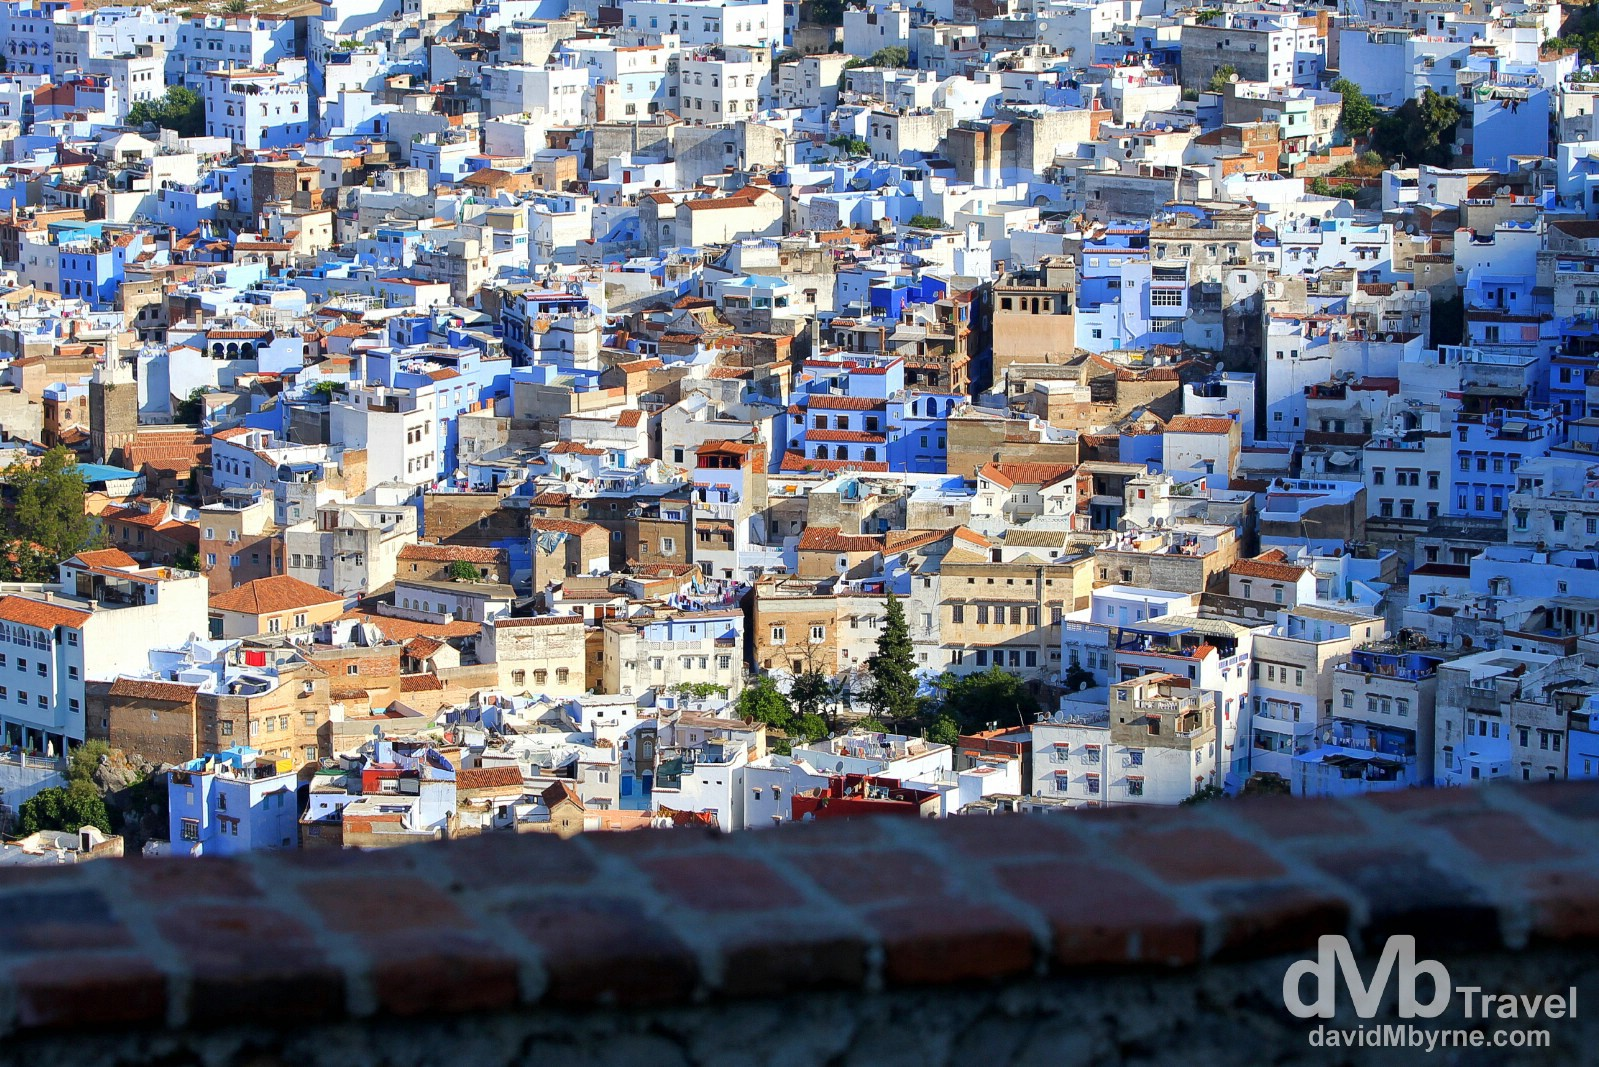 The rising sun creeps over a portion of the Chefchaouen Old Town as seen from the hills overlooking the town. Chefchaouen, Morocco. June 1st, 2014.